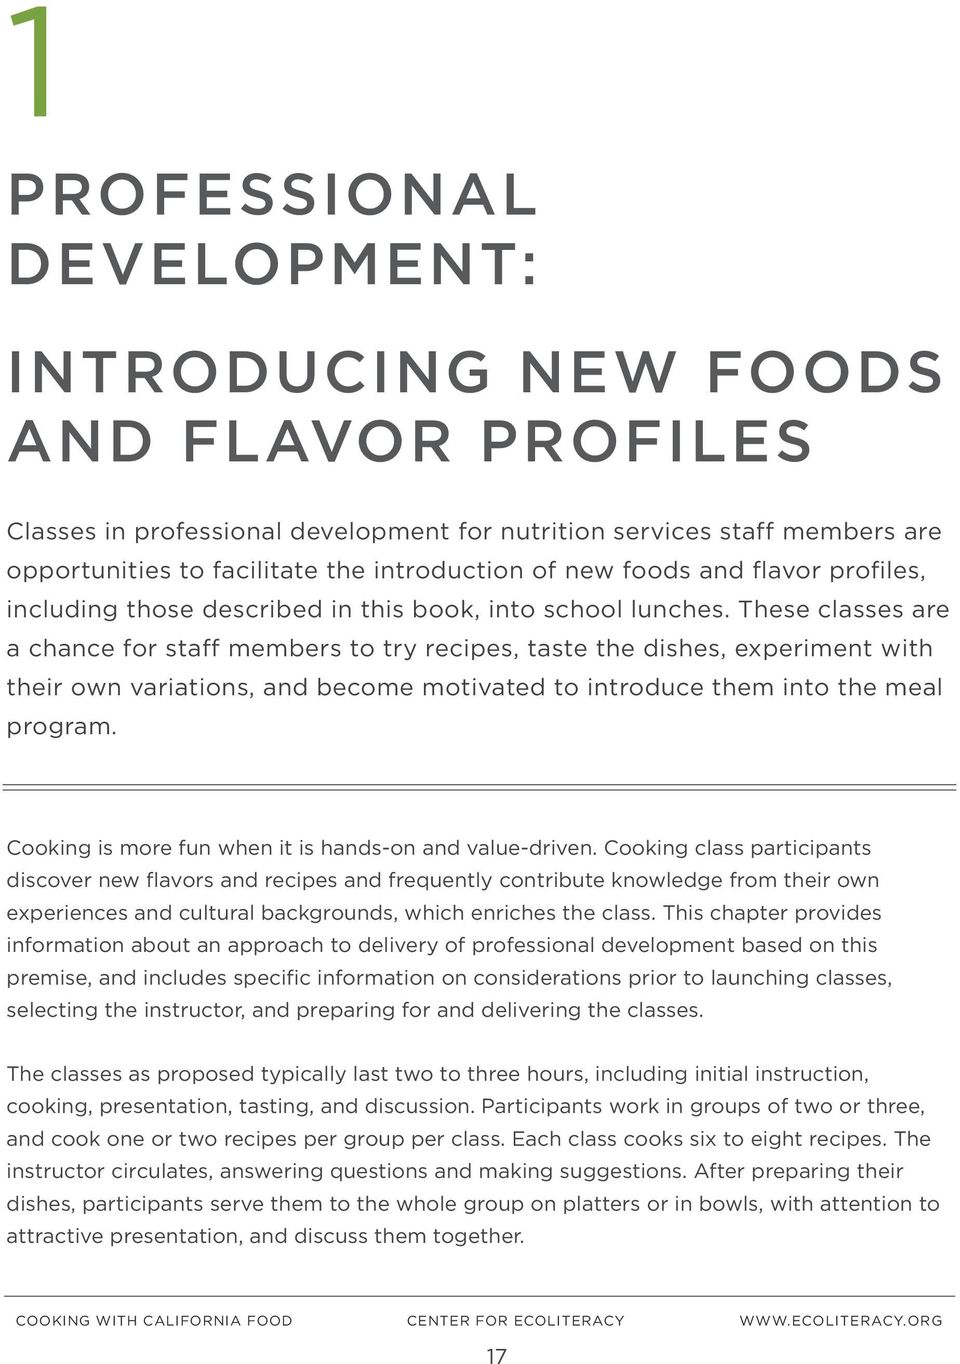 These classes are a chance for staff members to try recipes, taste the dishes, experiment with their own variations, and become motivated to introduce them into the meal program.